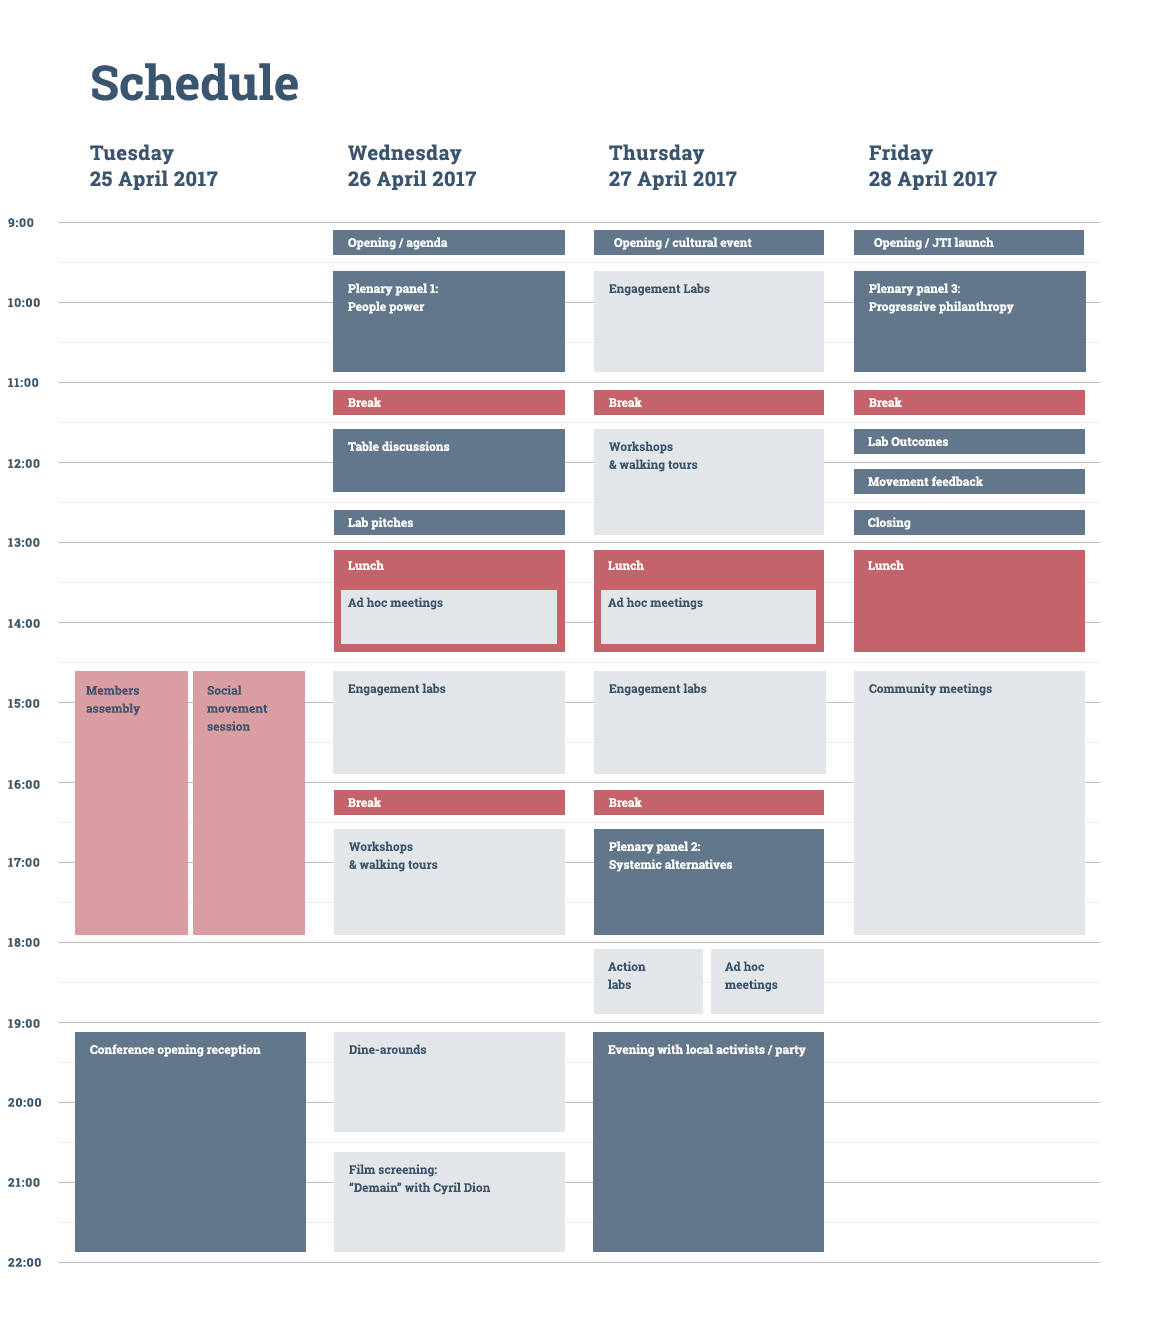 The-2017-Conference_schedule_r2.2